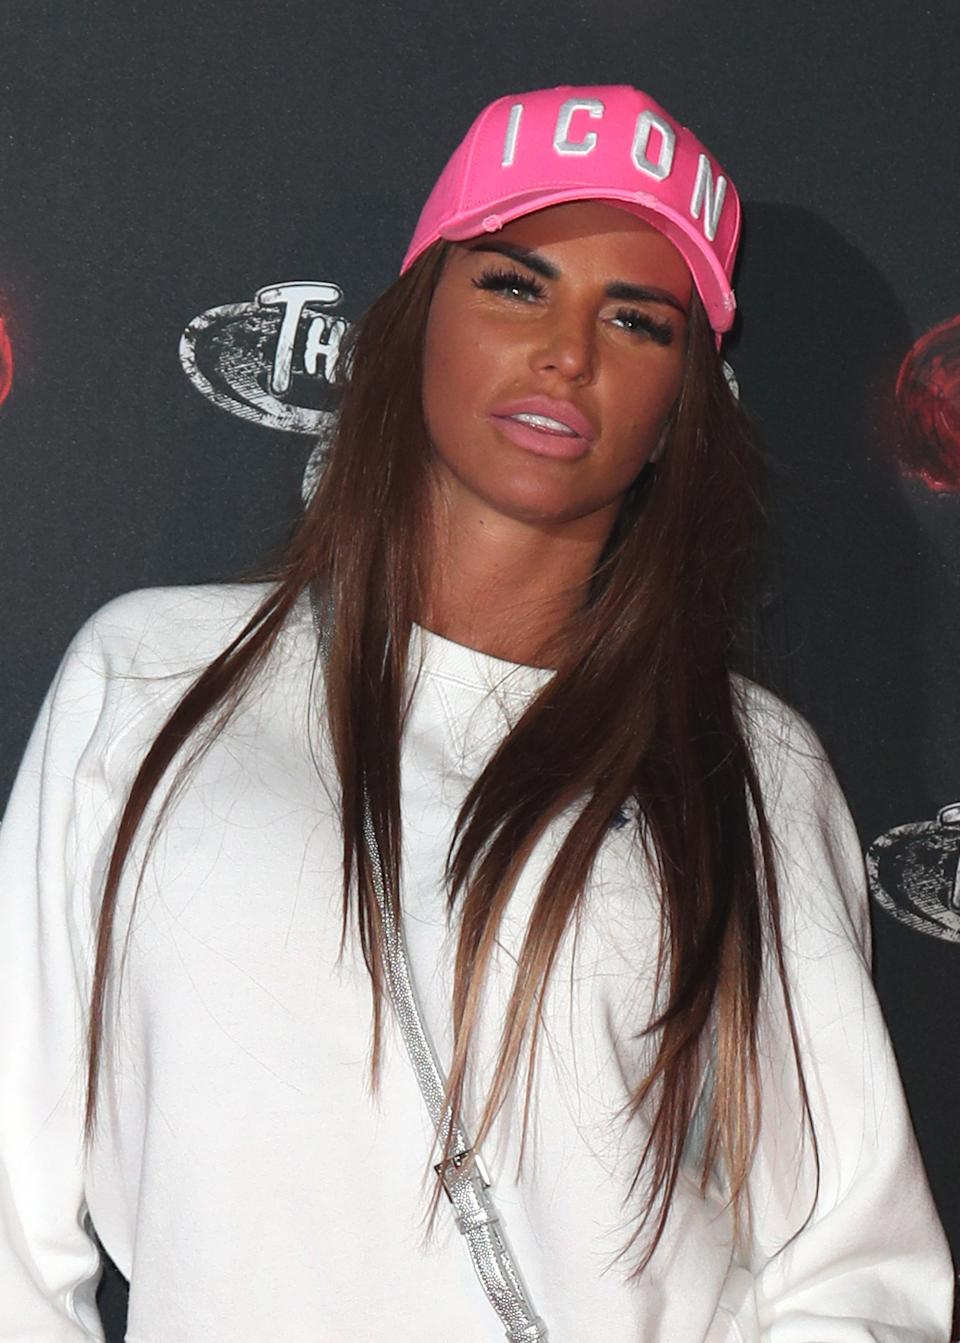 File photo dated 26/09/19 of Katie Price, who said she is registered as disabled and has applied for a blue badge after breaking her feet in a fall during a holiday in Turkey.